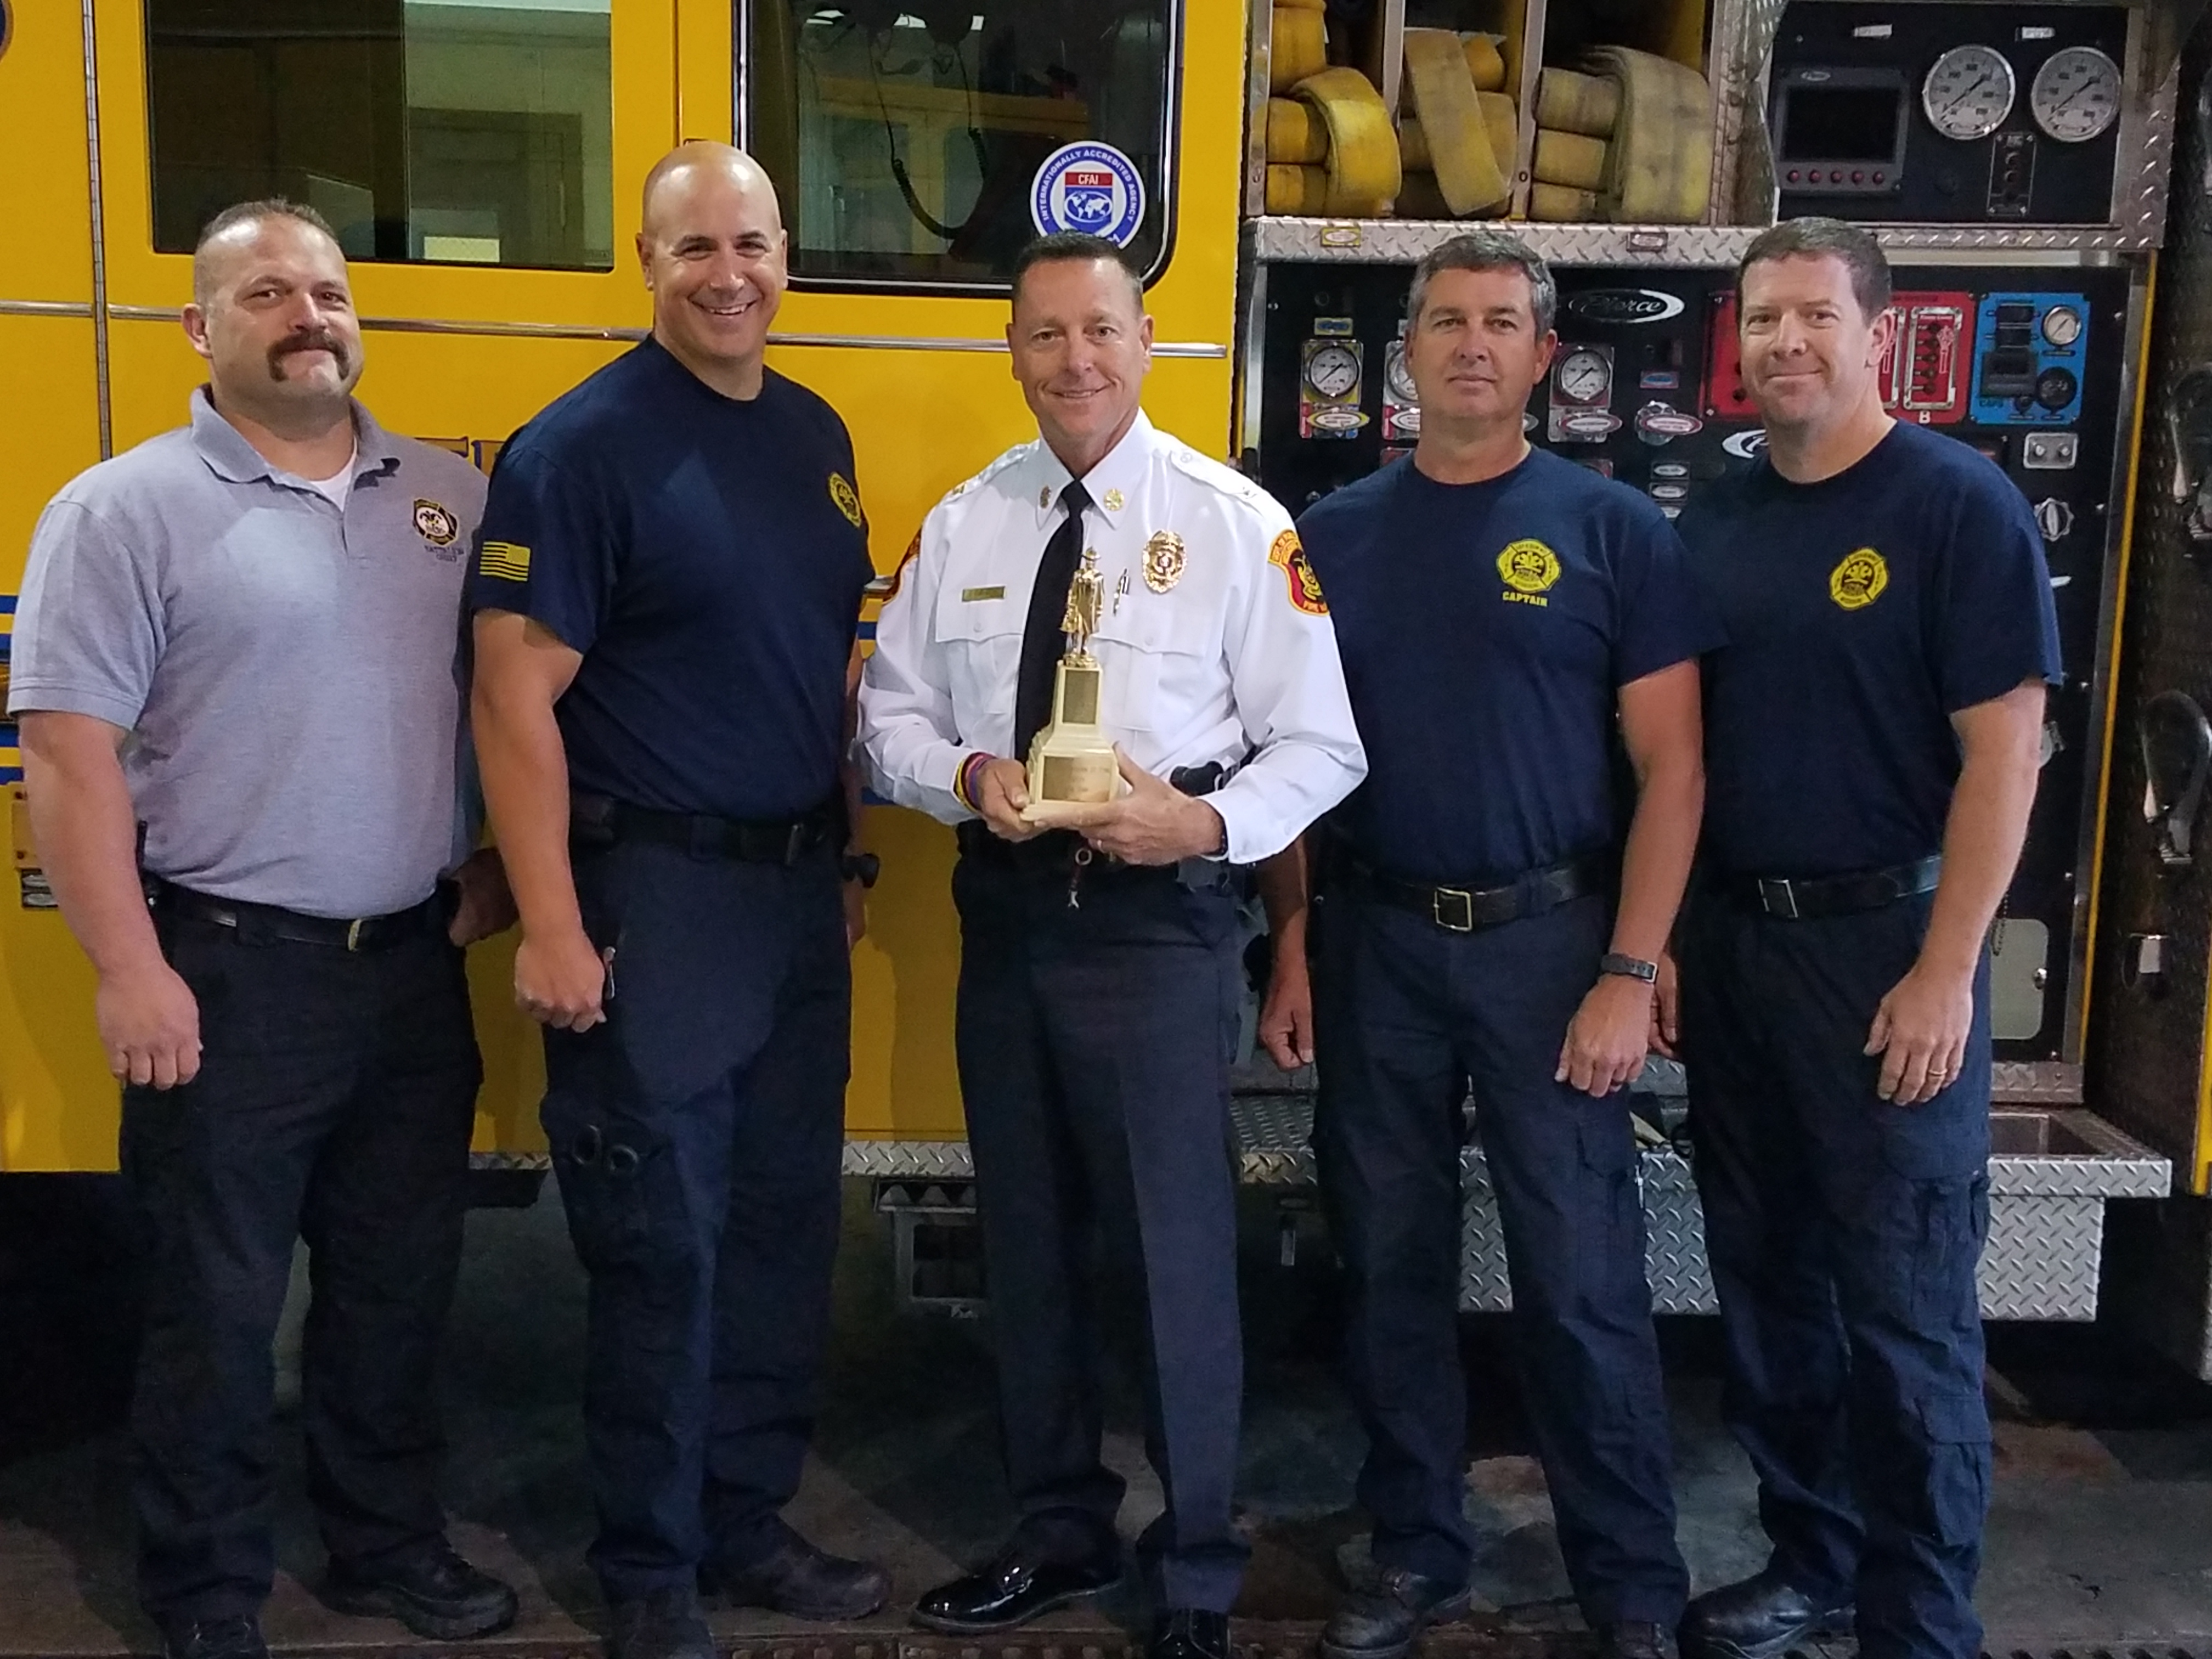 Salute to Service Captain Tom Loy, Paramedic Jacob Wiemann, Battalion Chief Arby Todd and Fire Specialist Craig Hill